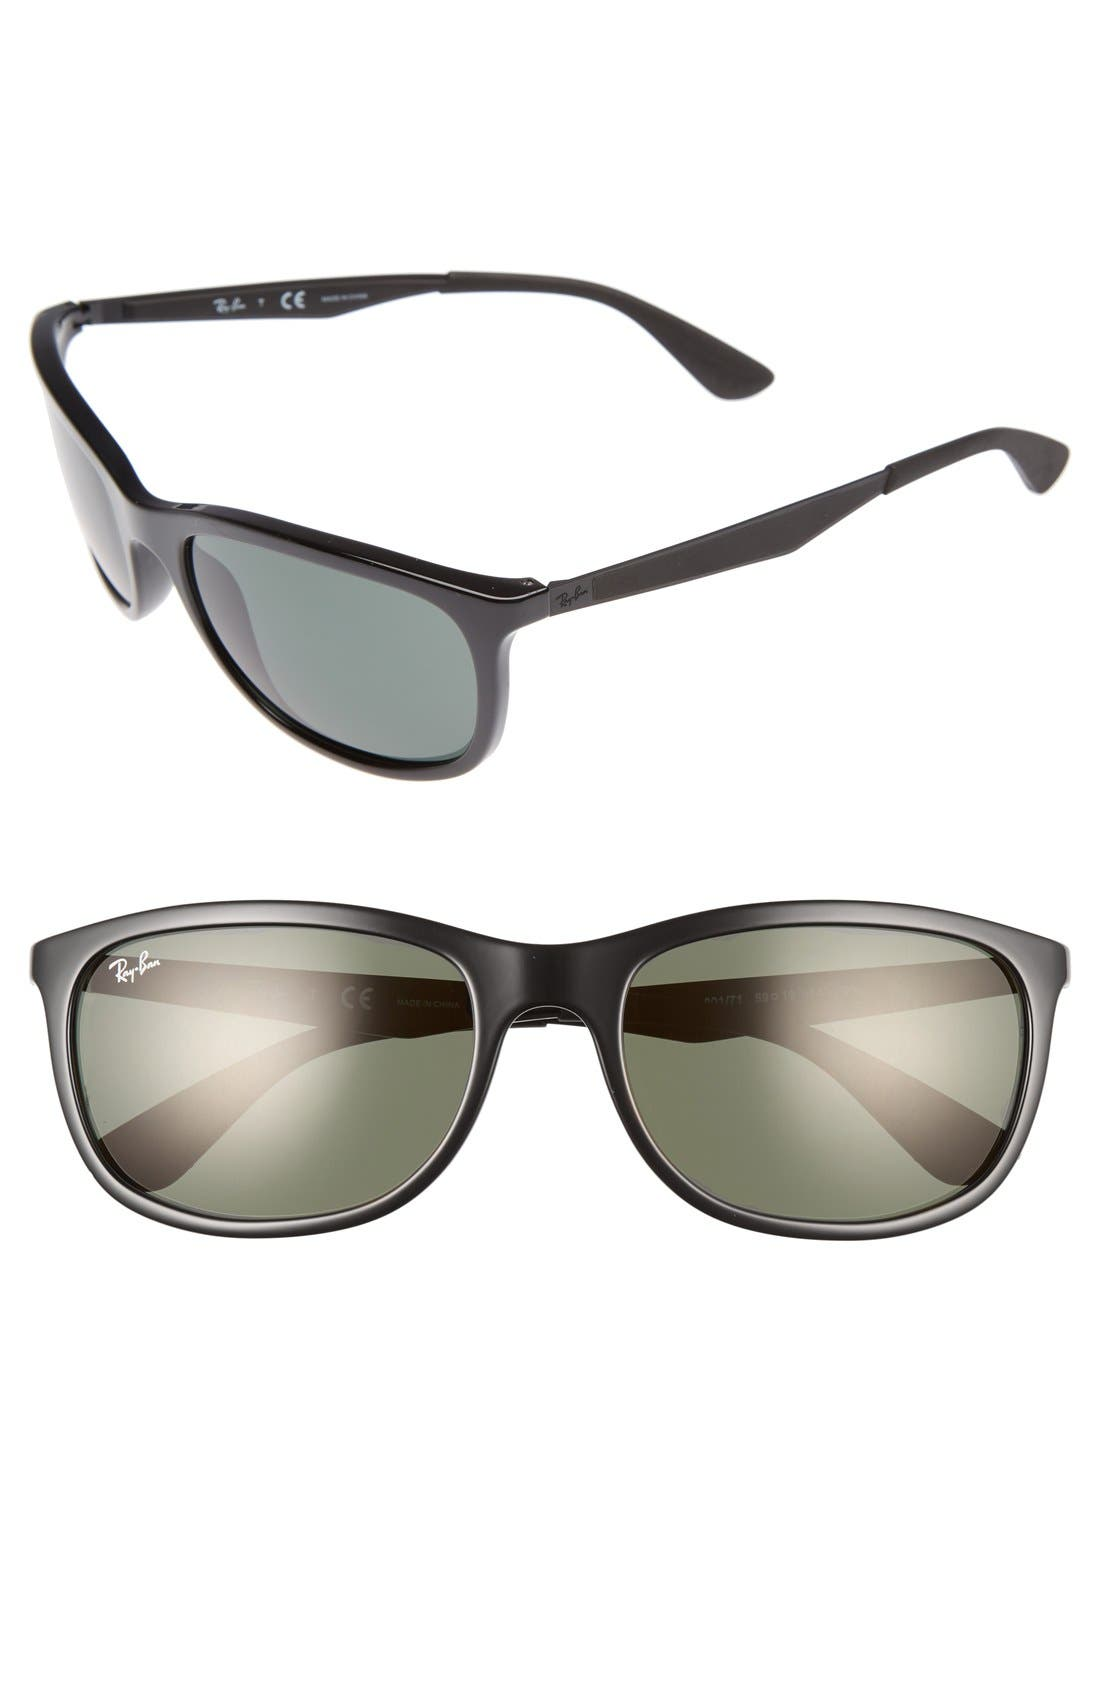 Active Lifestyle 59mm Rectangular Sunglasses,                             Main thumbnail 1, color,